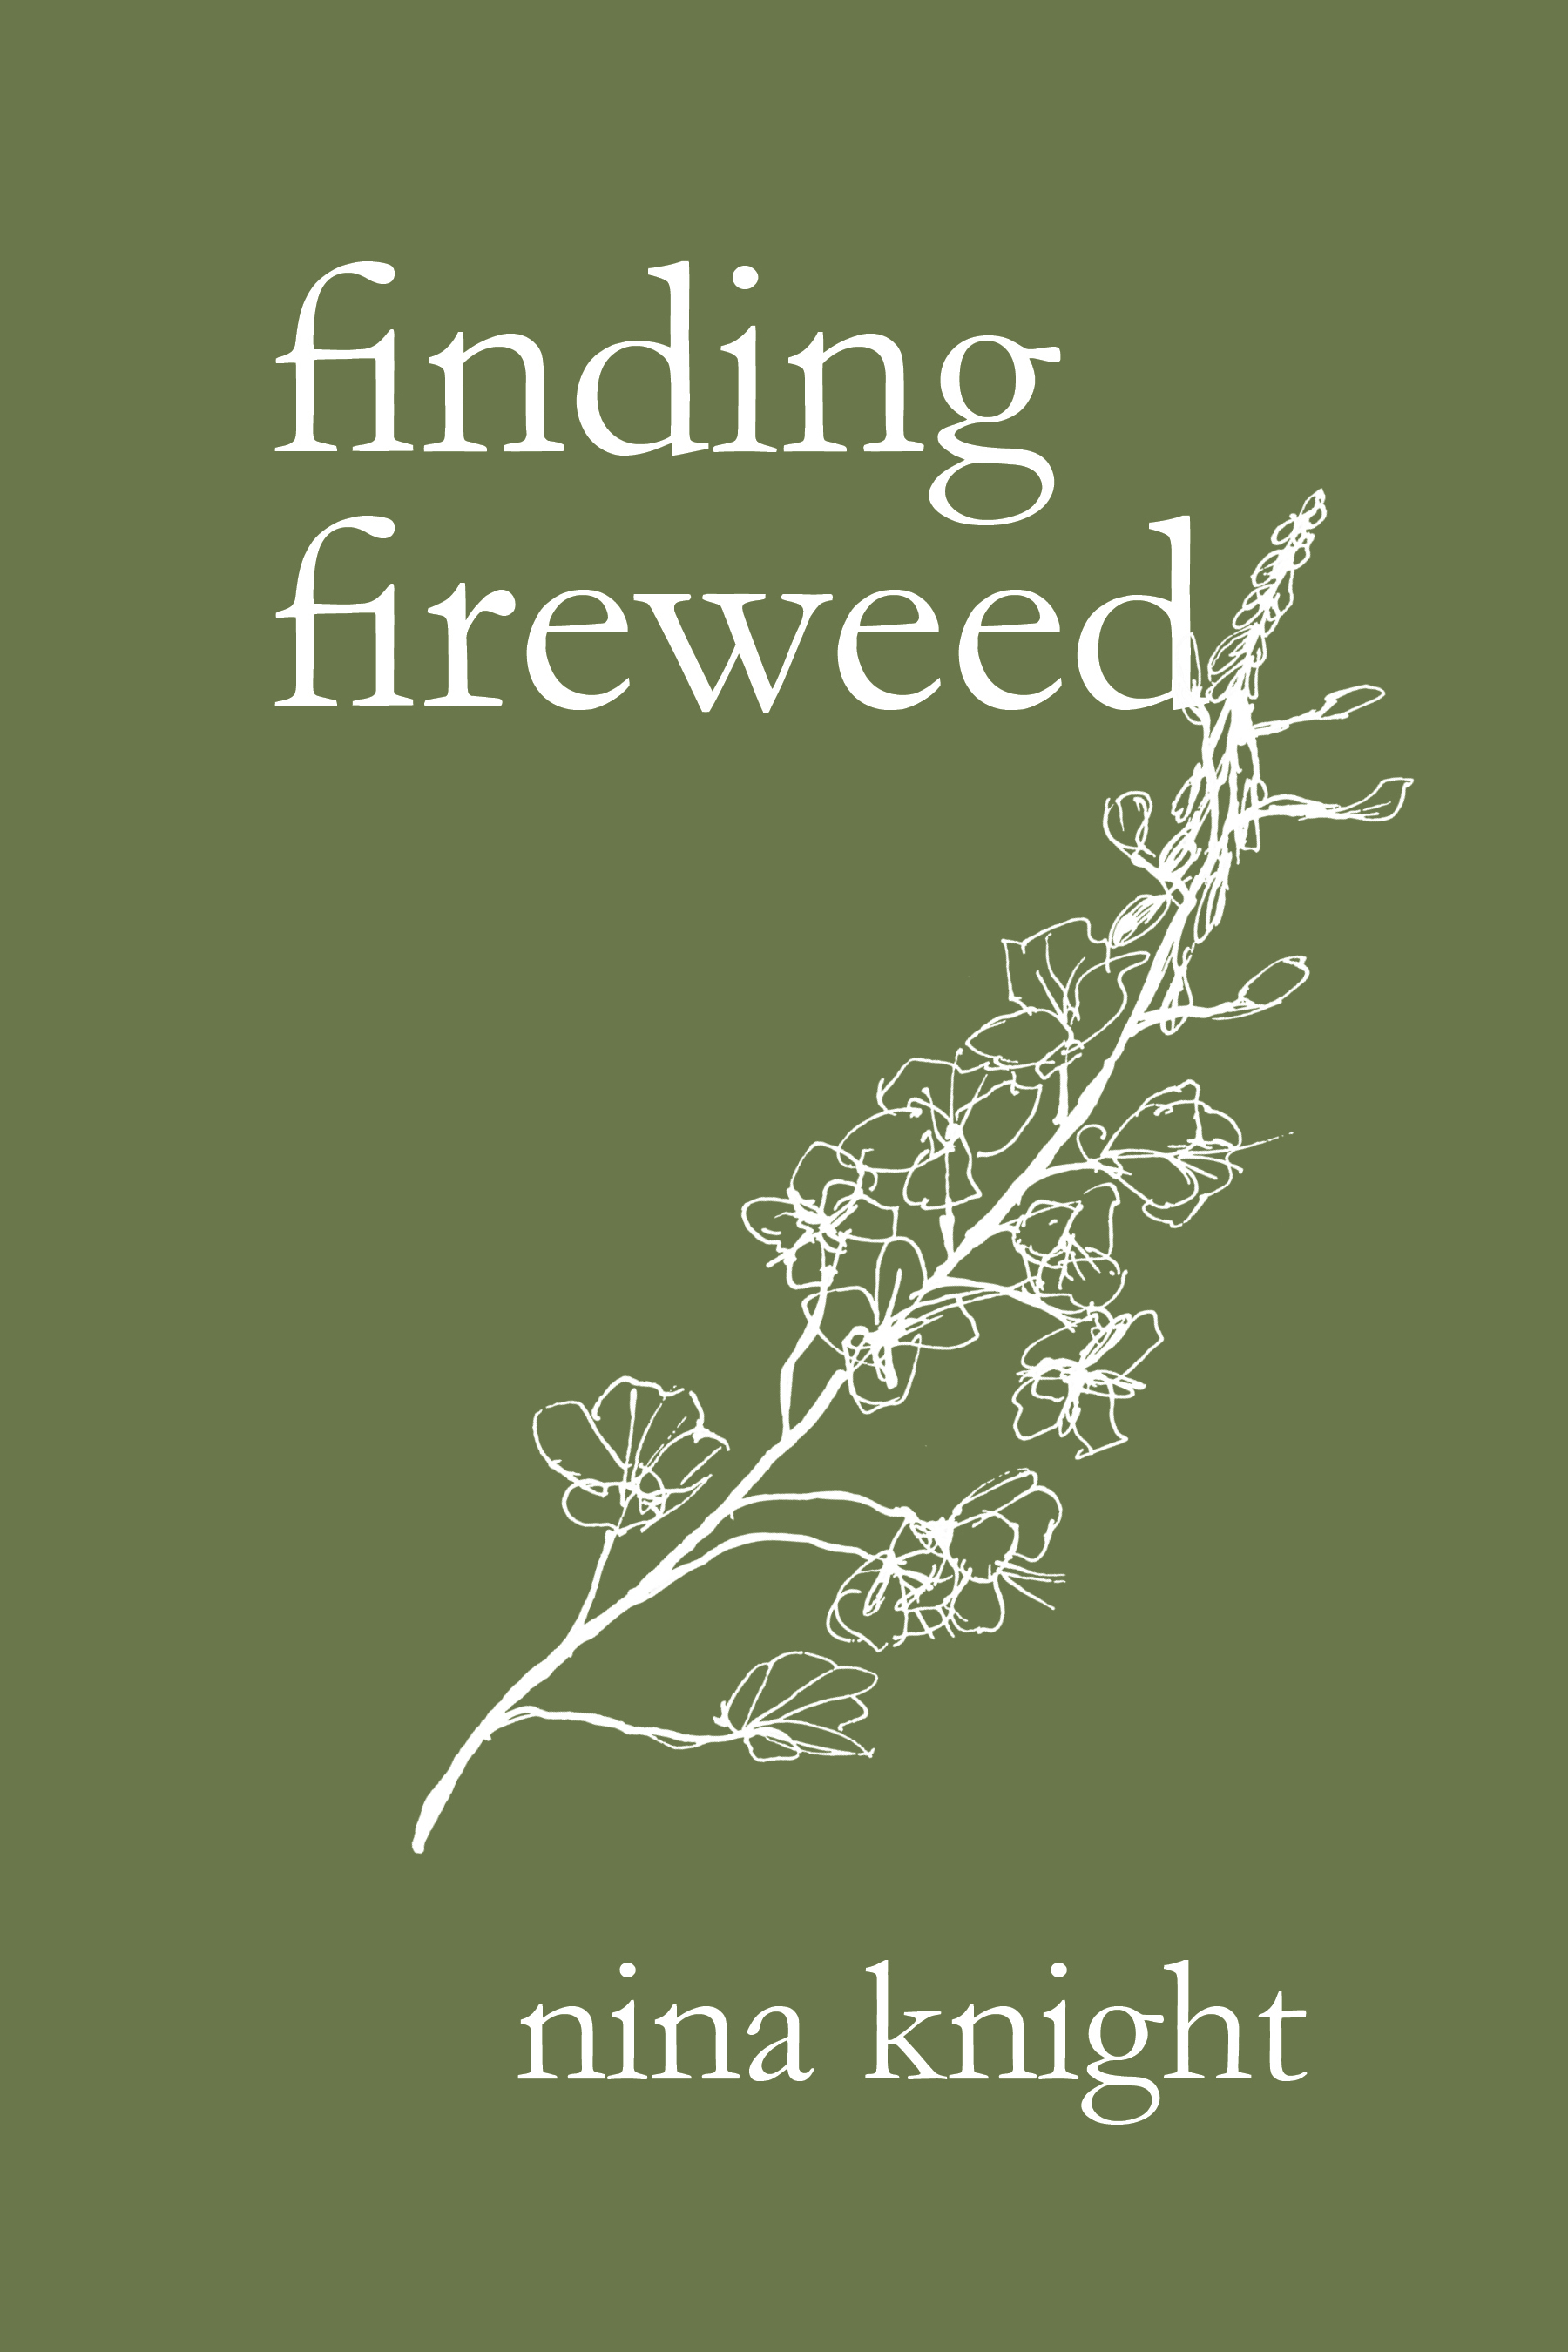 finding fireweed by nina knight